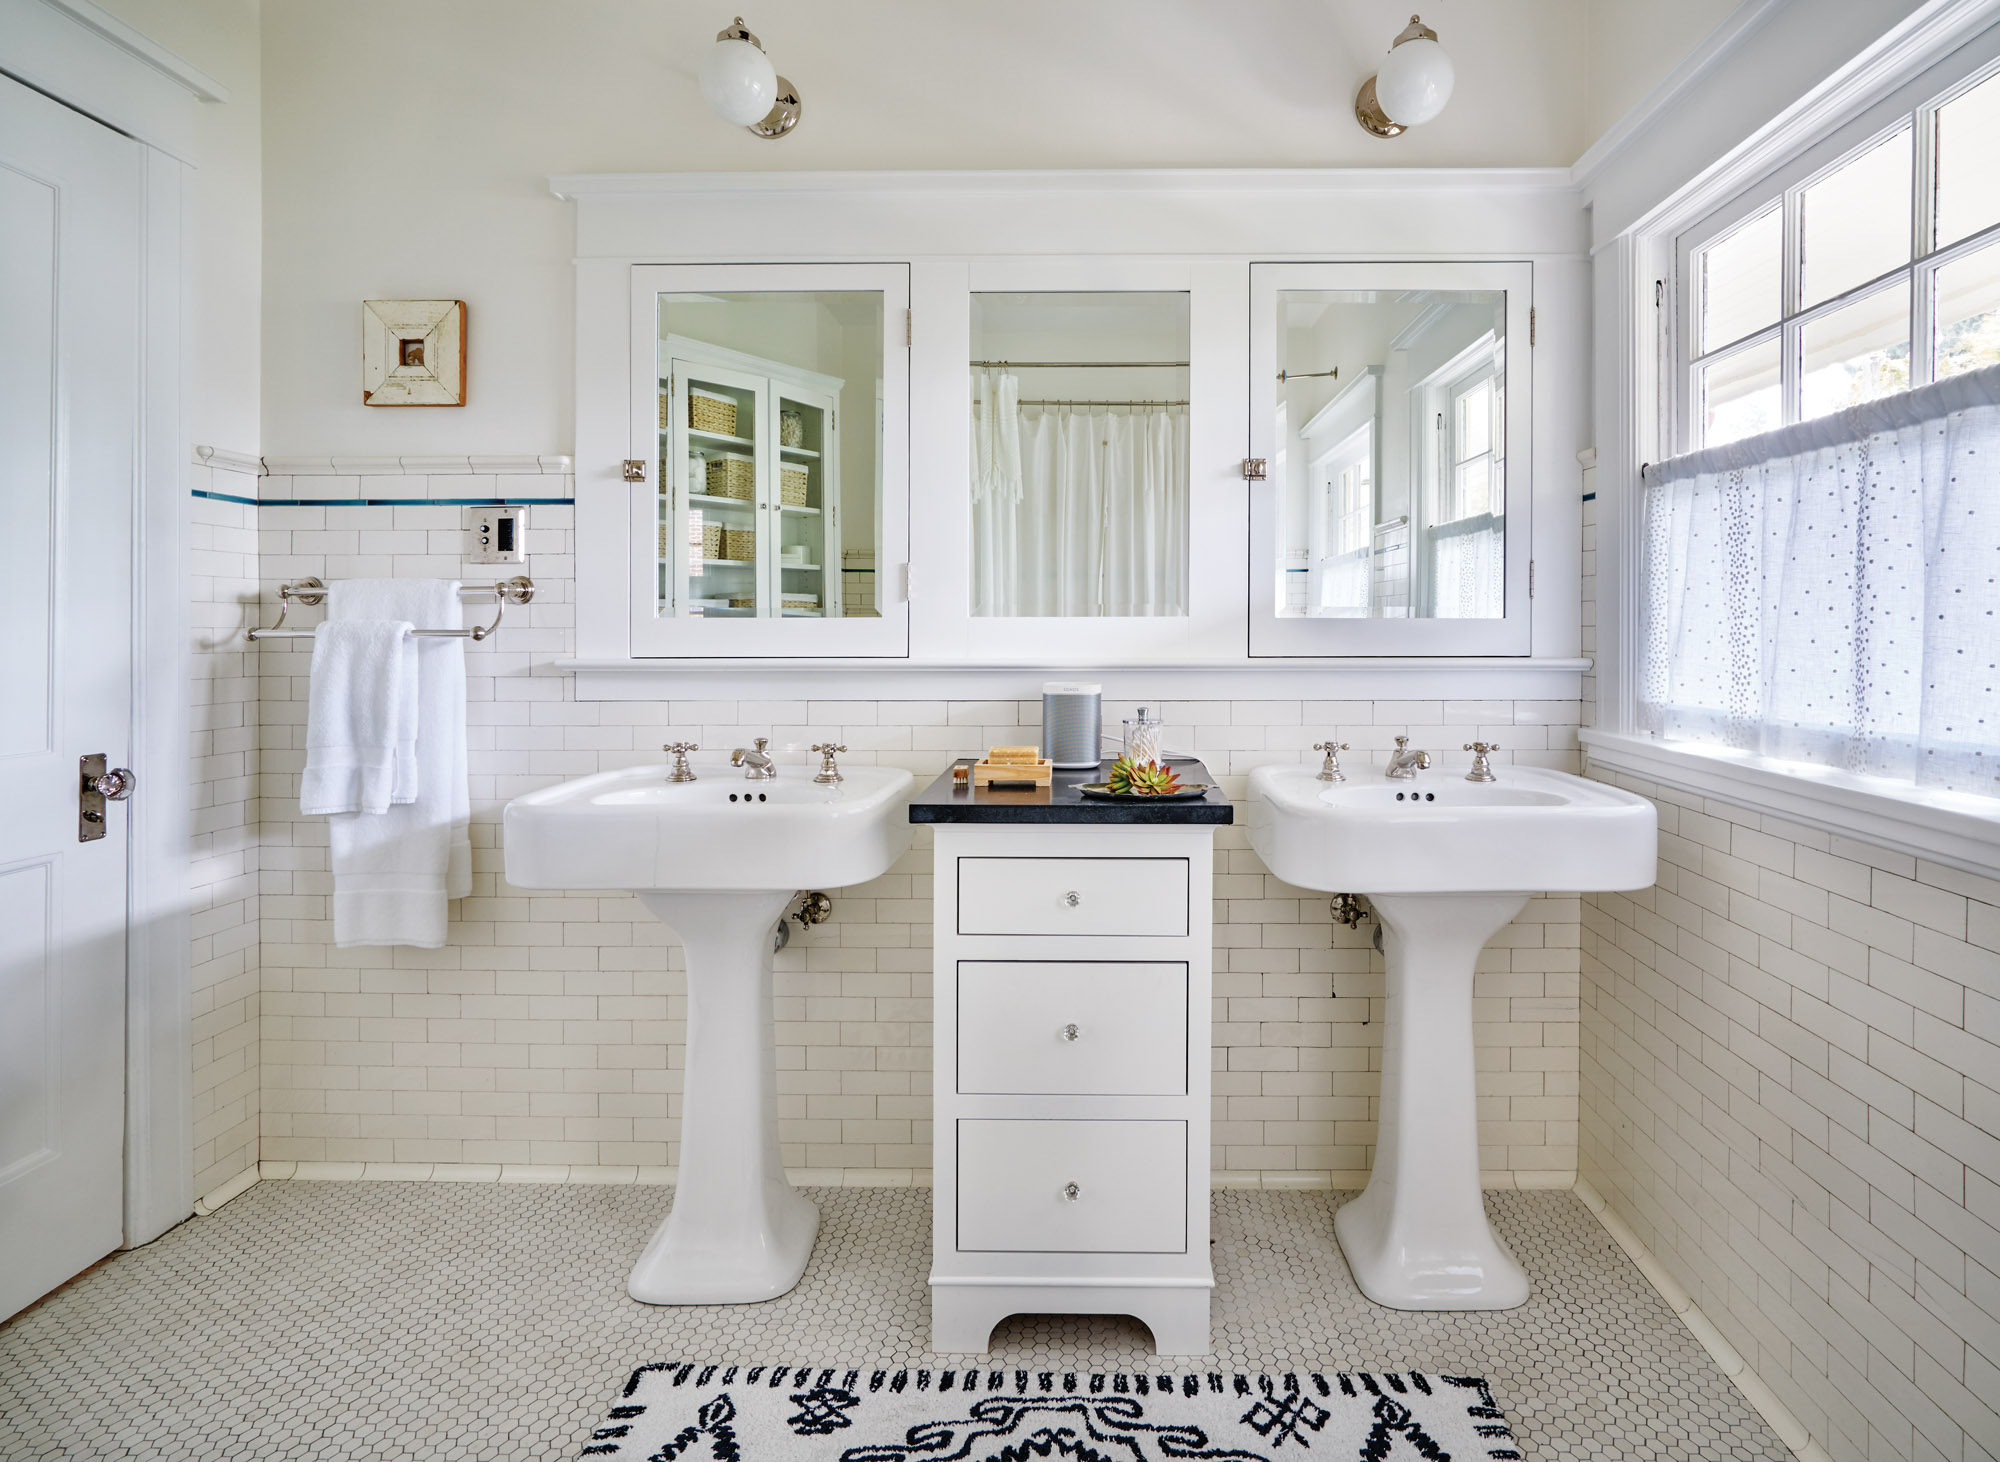 reproduction pedestal sinks